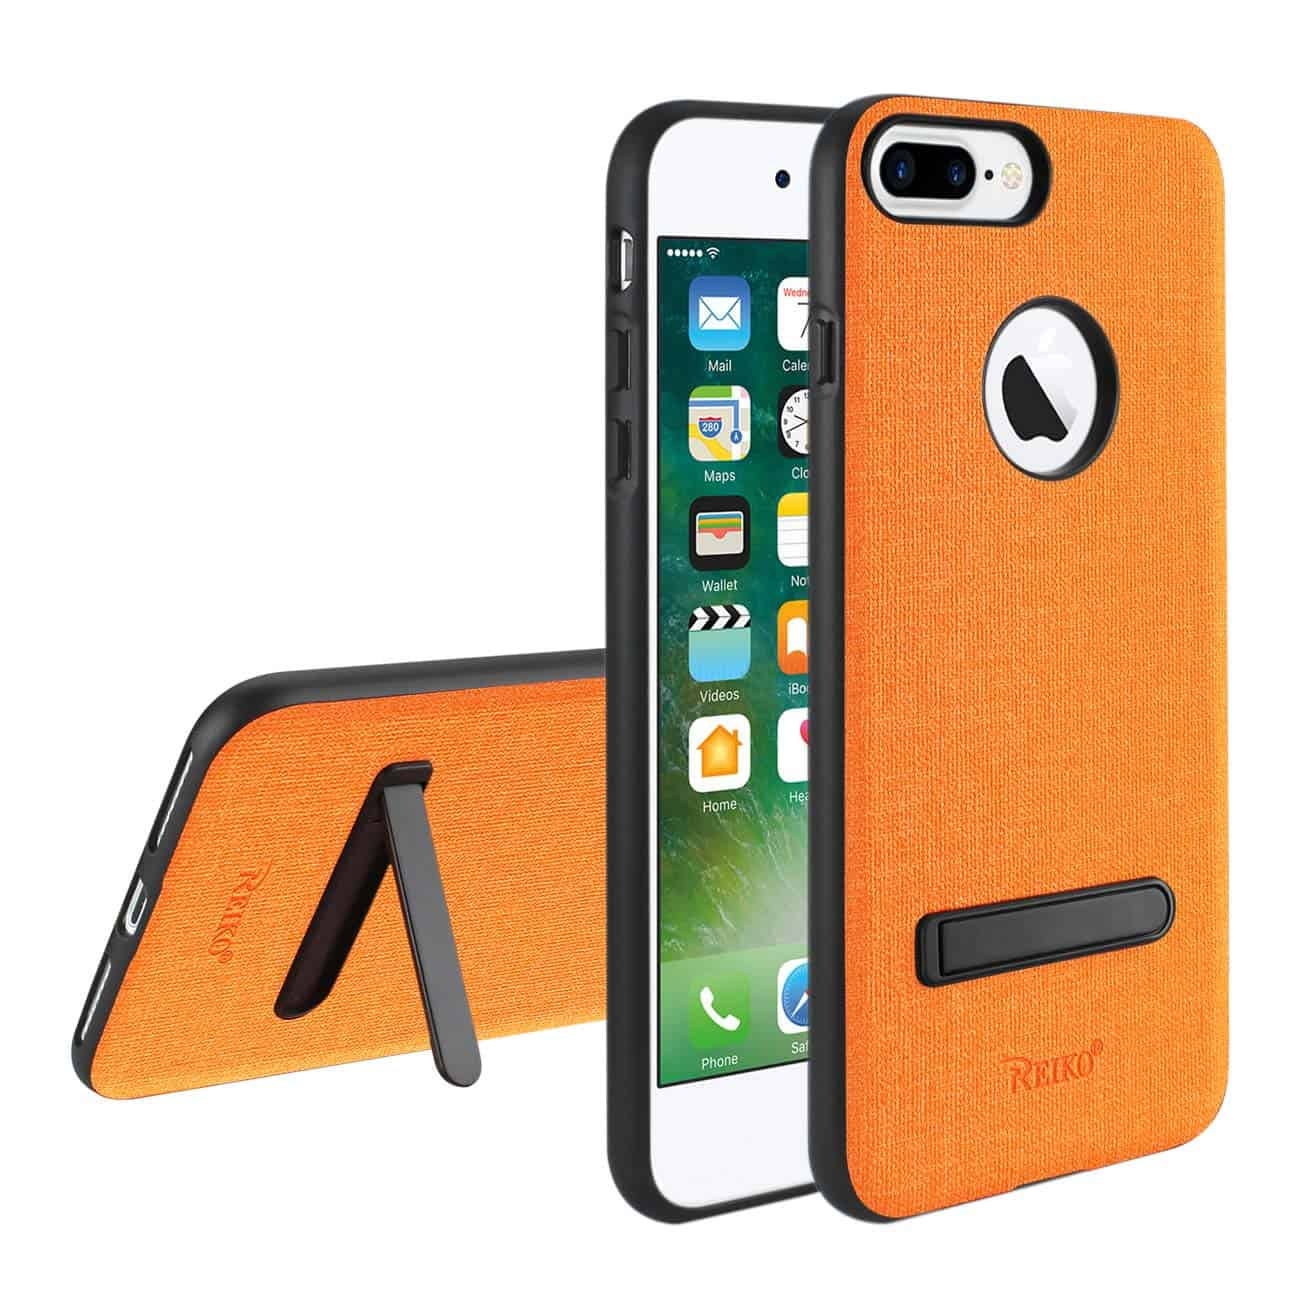 IPHONE 7 PLUS/ 6S PLUS/ 6 PLUS RUGGED TEXTURE TPU PROTECTIVE COVER IN ORANGE